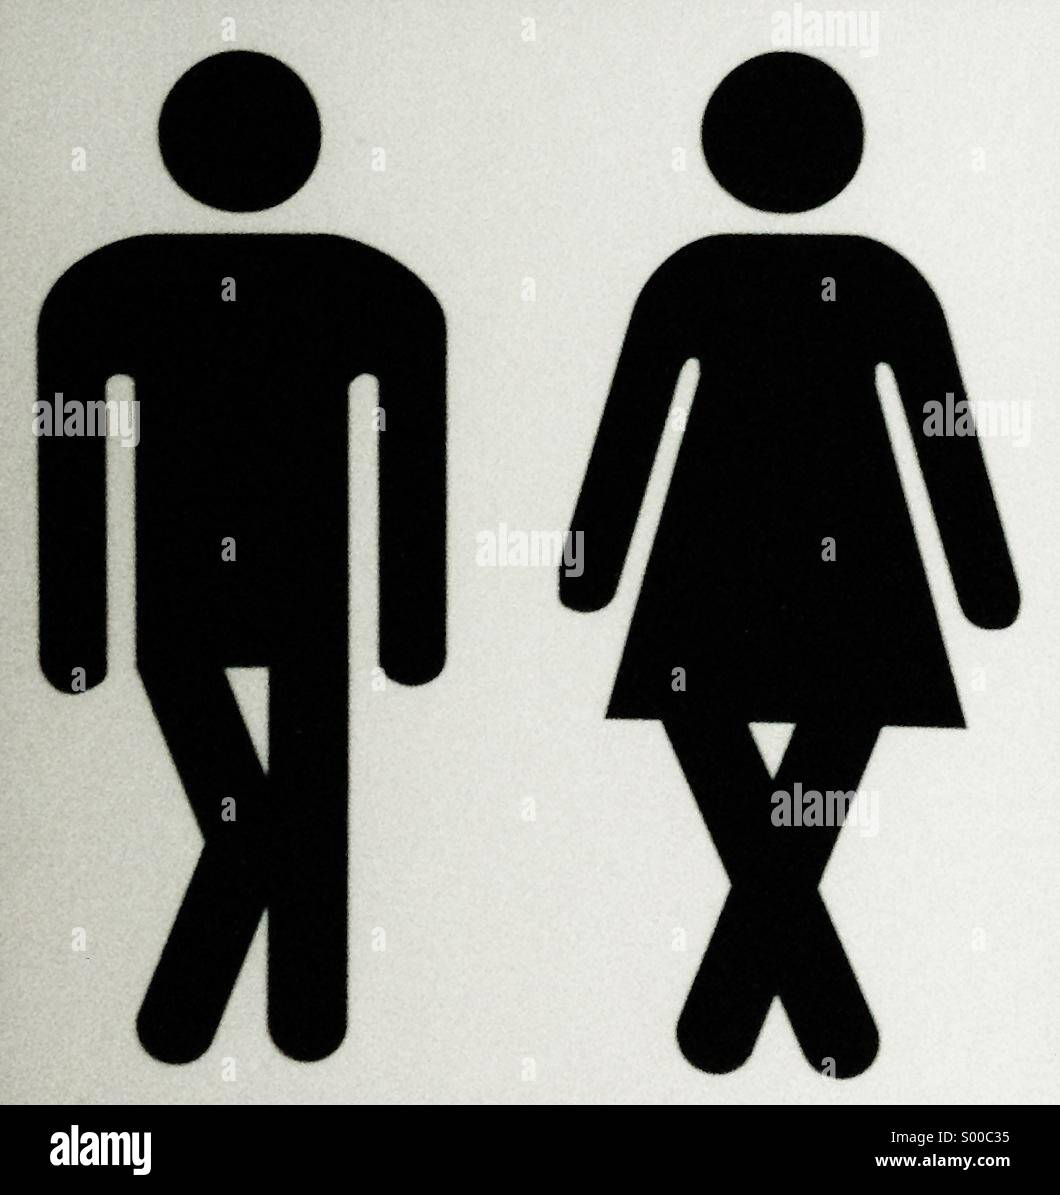 A sign showing male and female characters with crossed legs, needing to use a convenience. - Stock Image